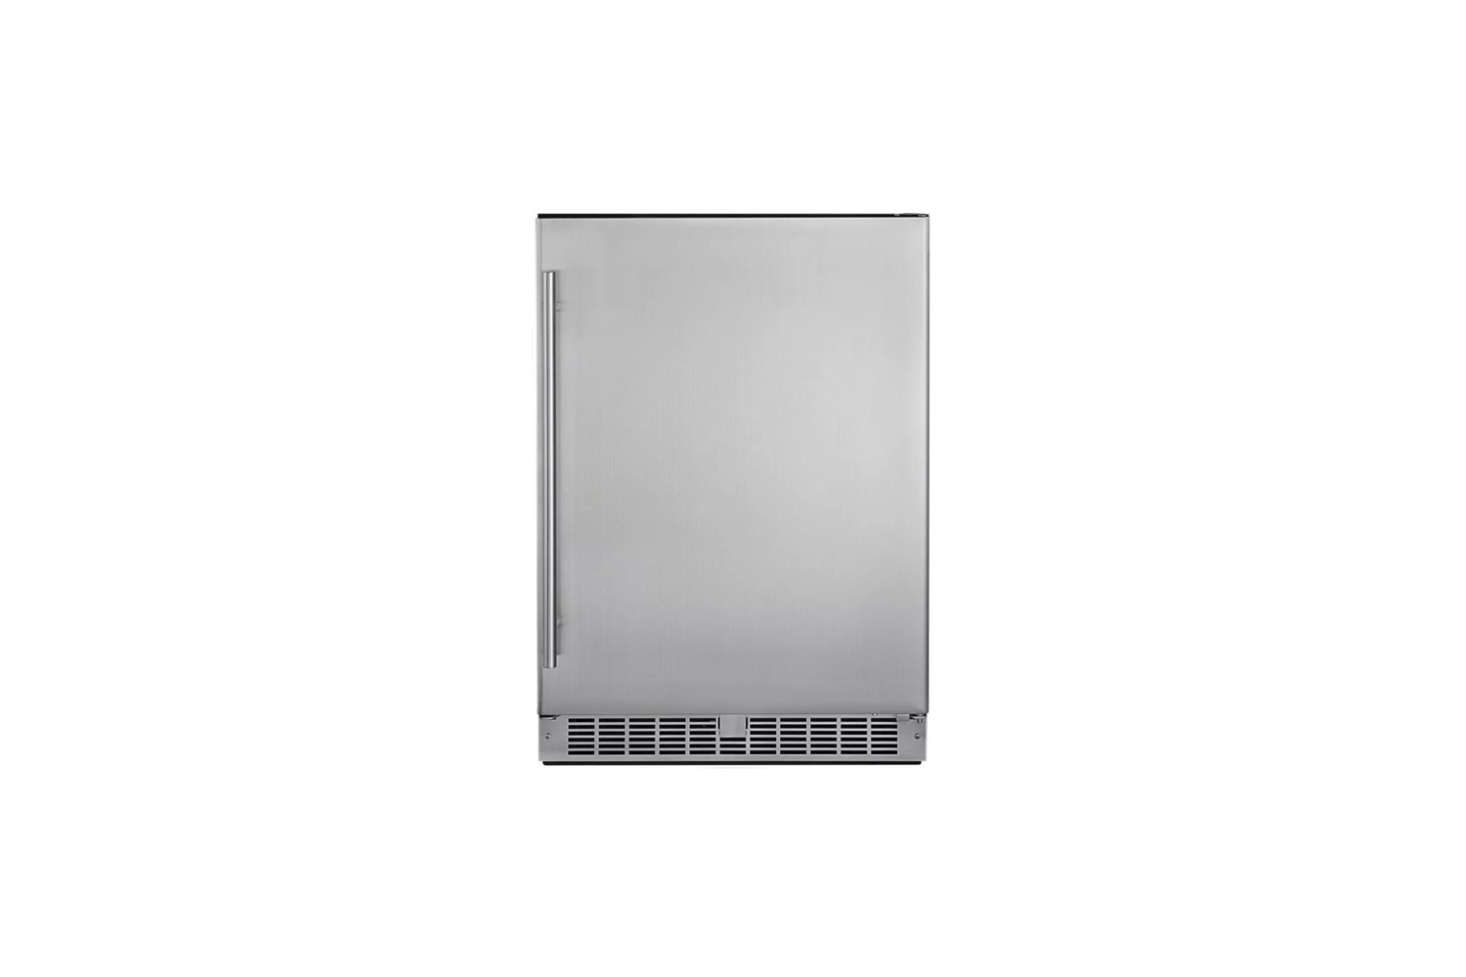 The Danby Silhouette Series Compact All-Refrigerator is $999 at AJ Madison.